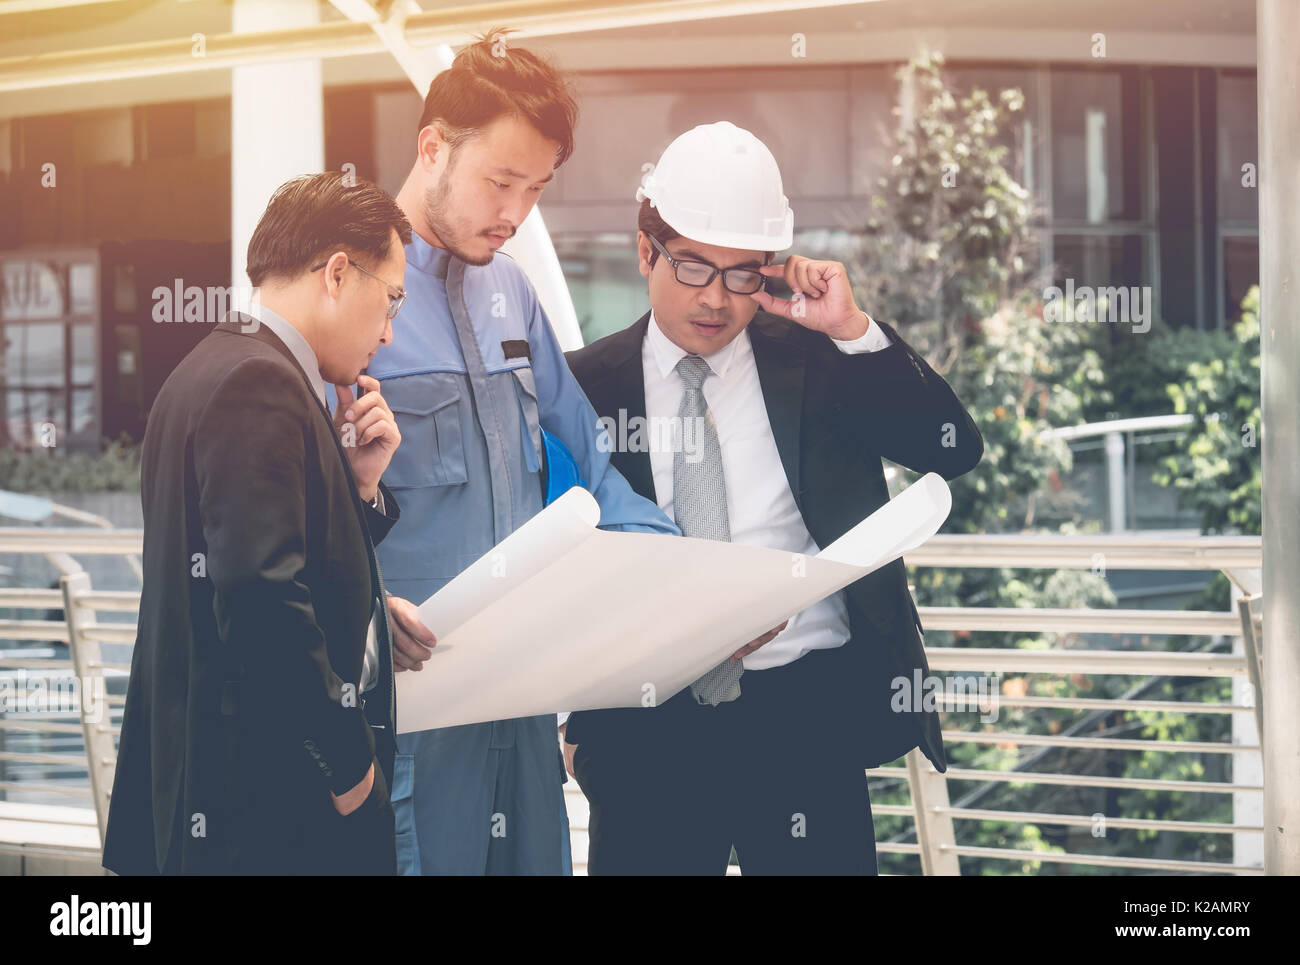 Team of architects and engineer at outdoor building and talking to planning work - Stock Image